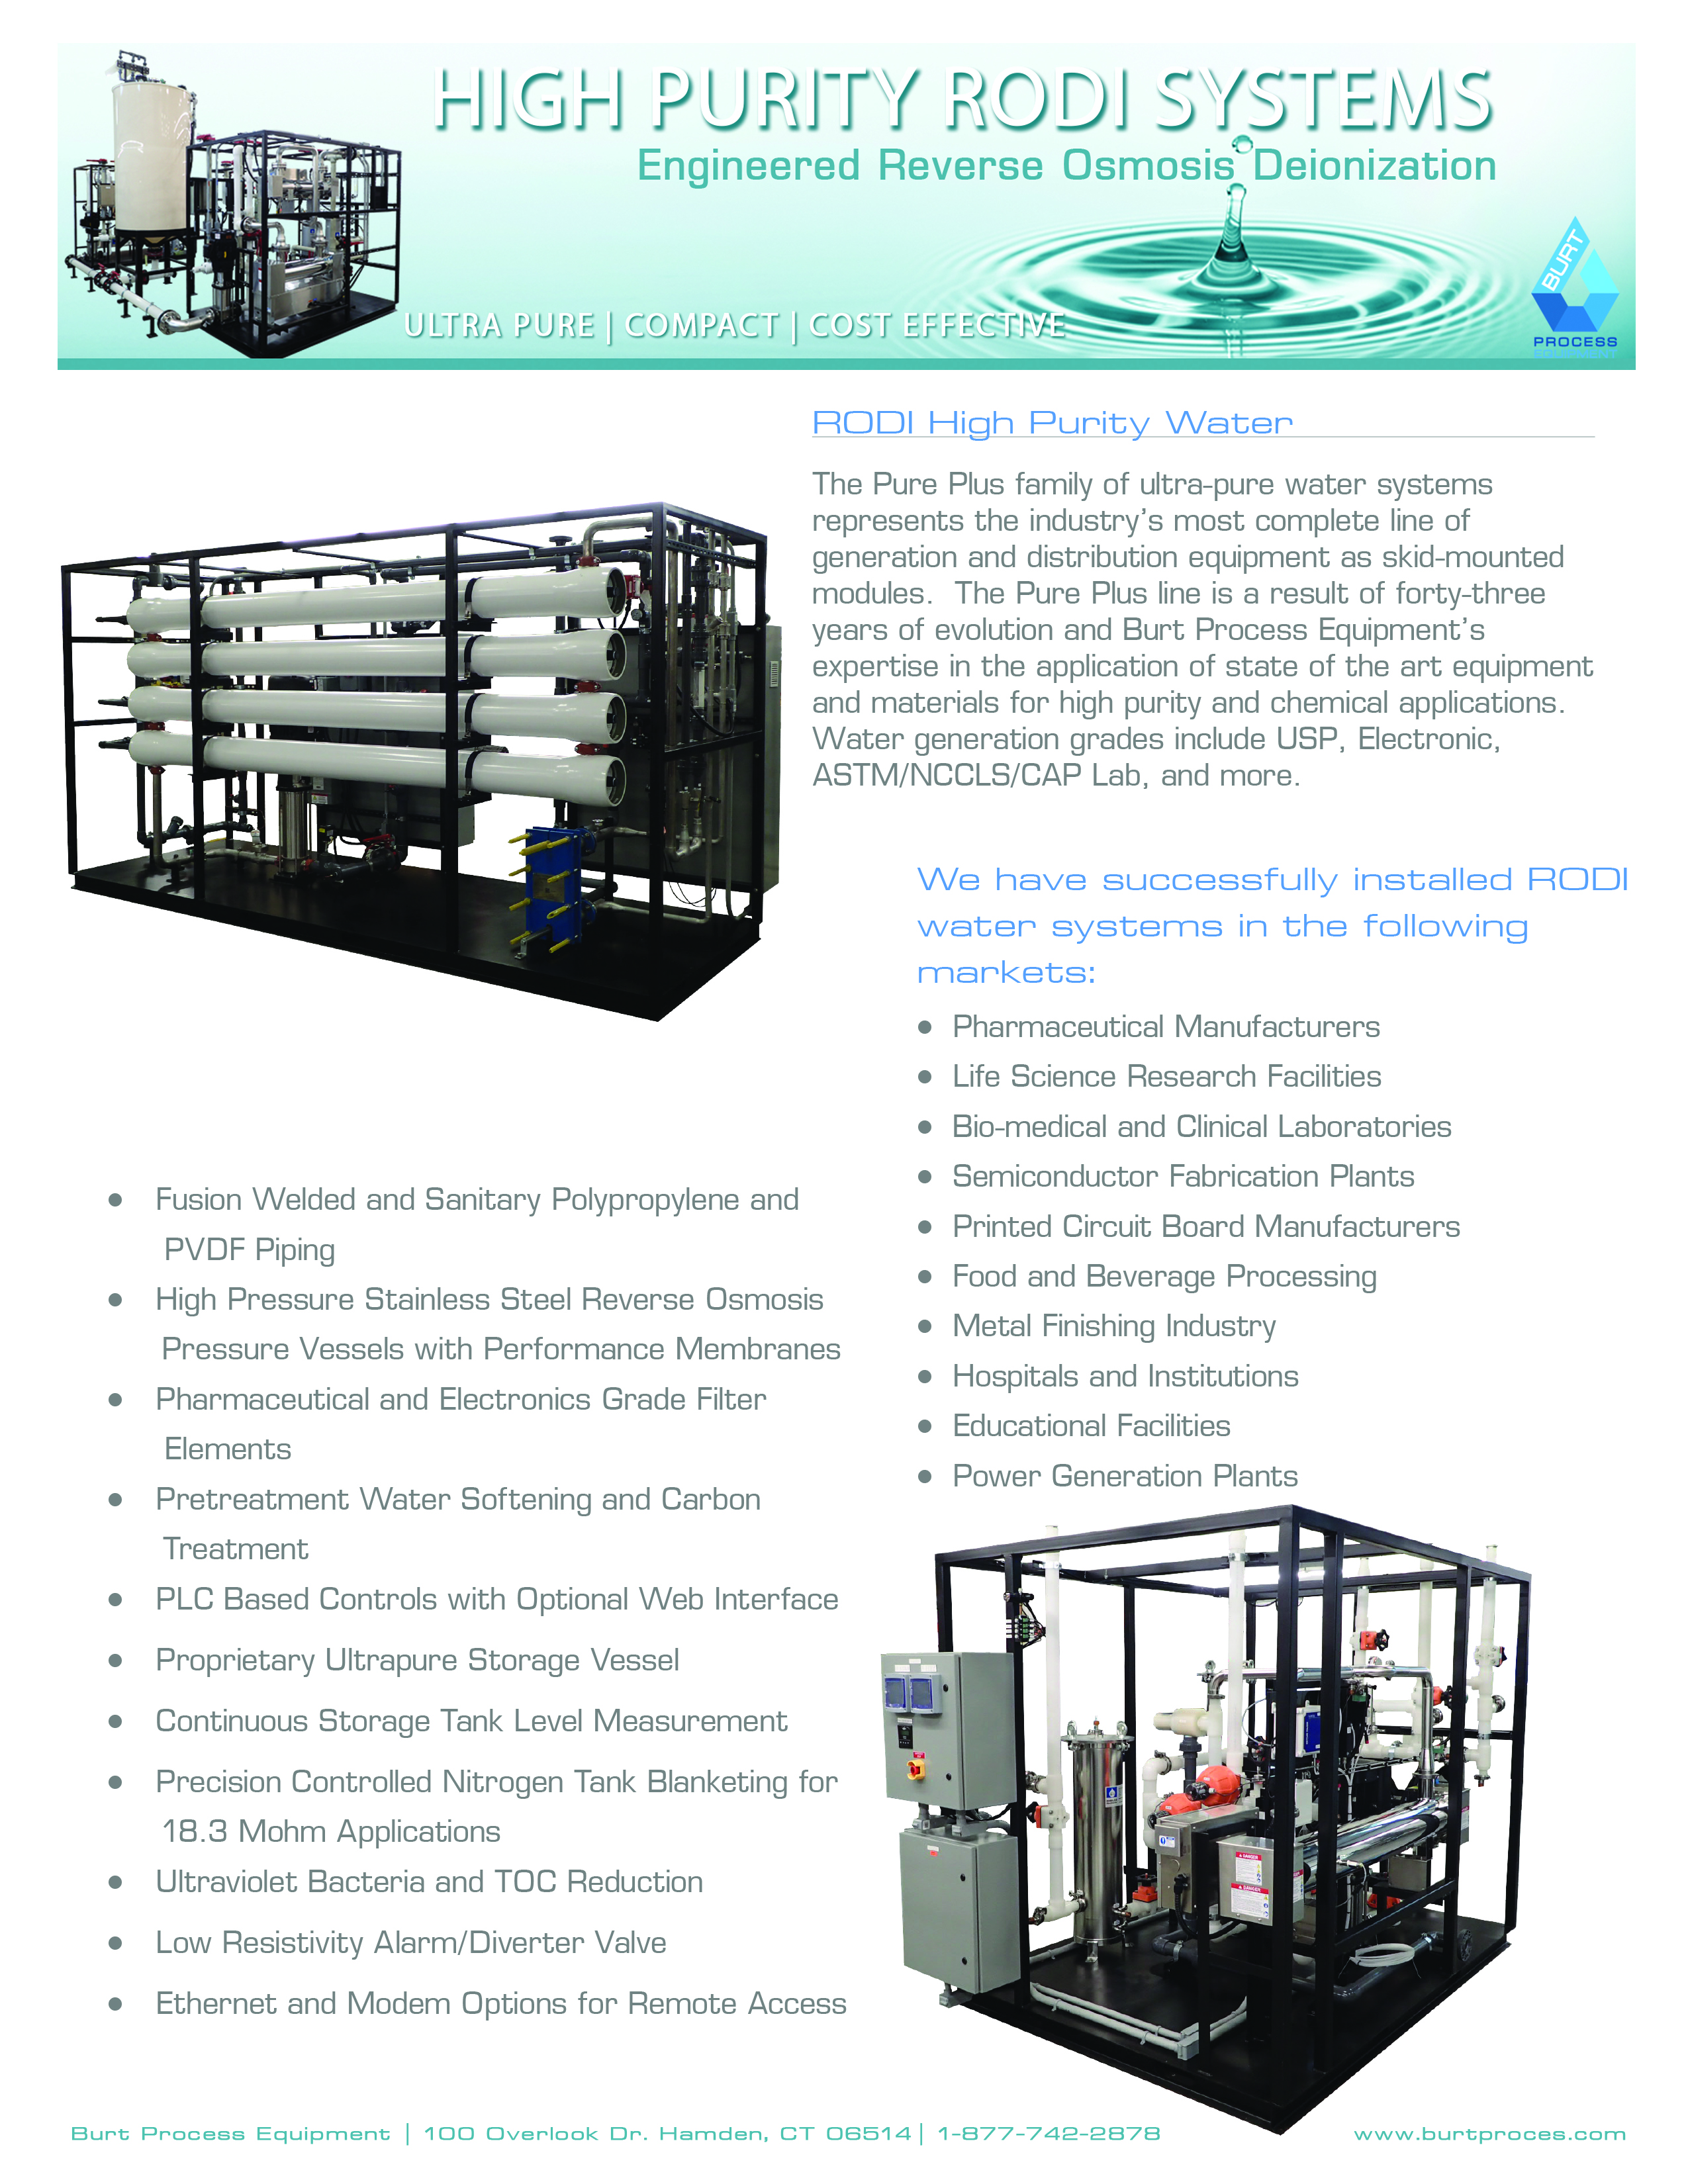 High Purity System RODI Systems Brochure